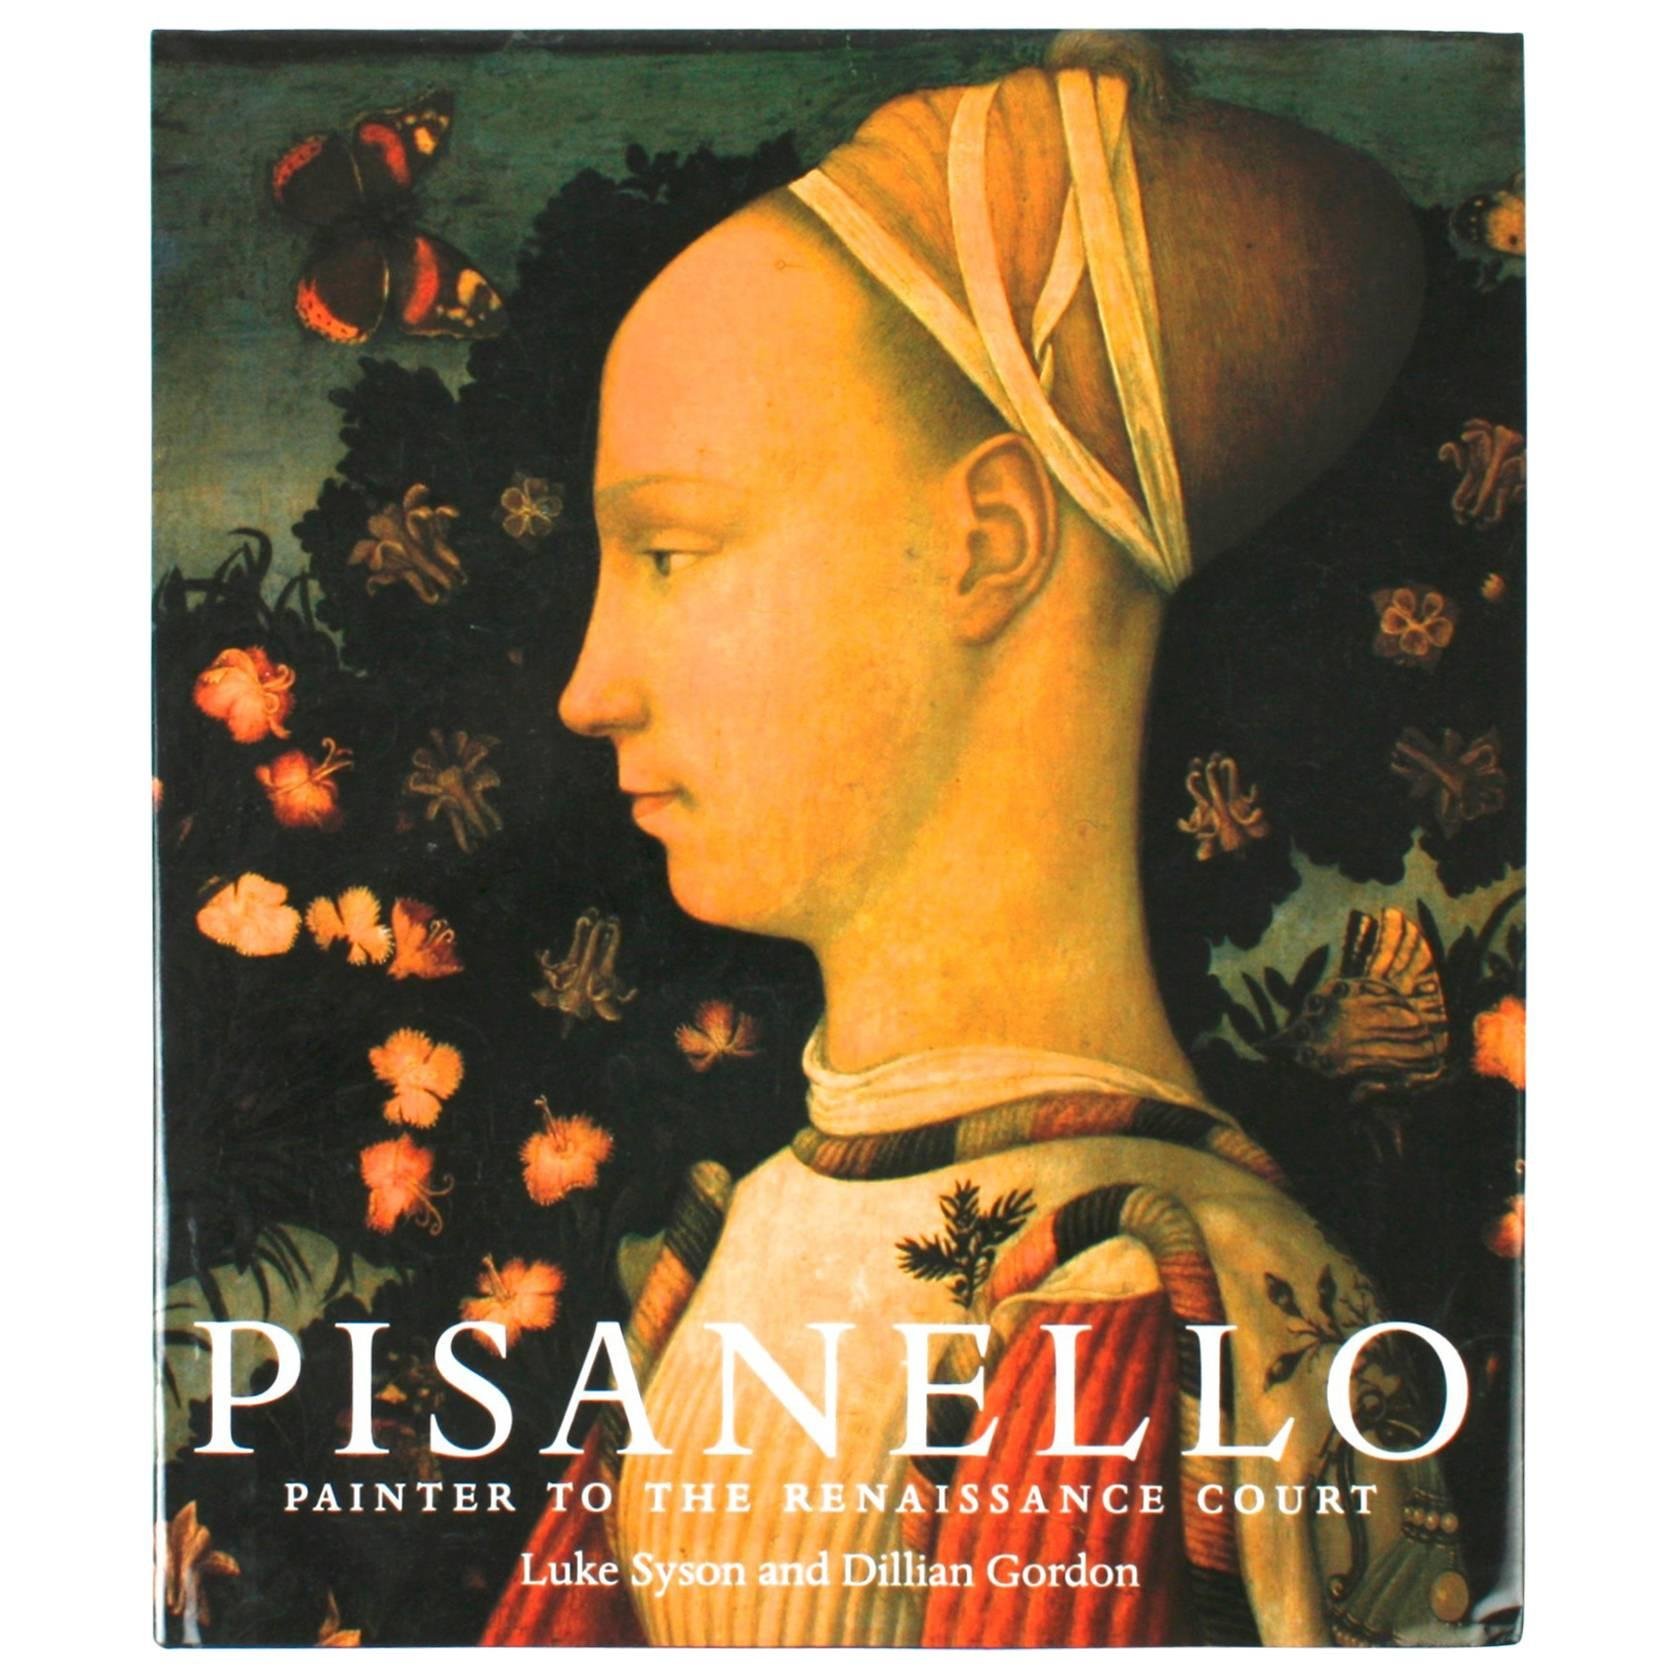 Pisanello, Painter to the Renaissance Court, First Edition